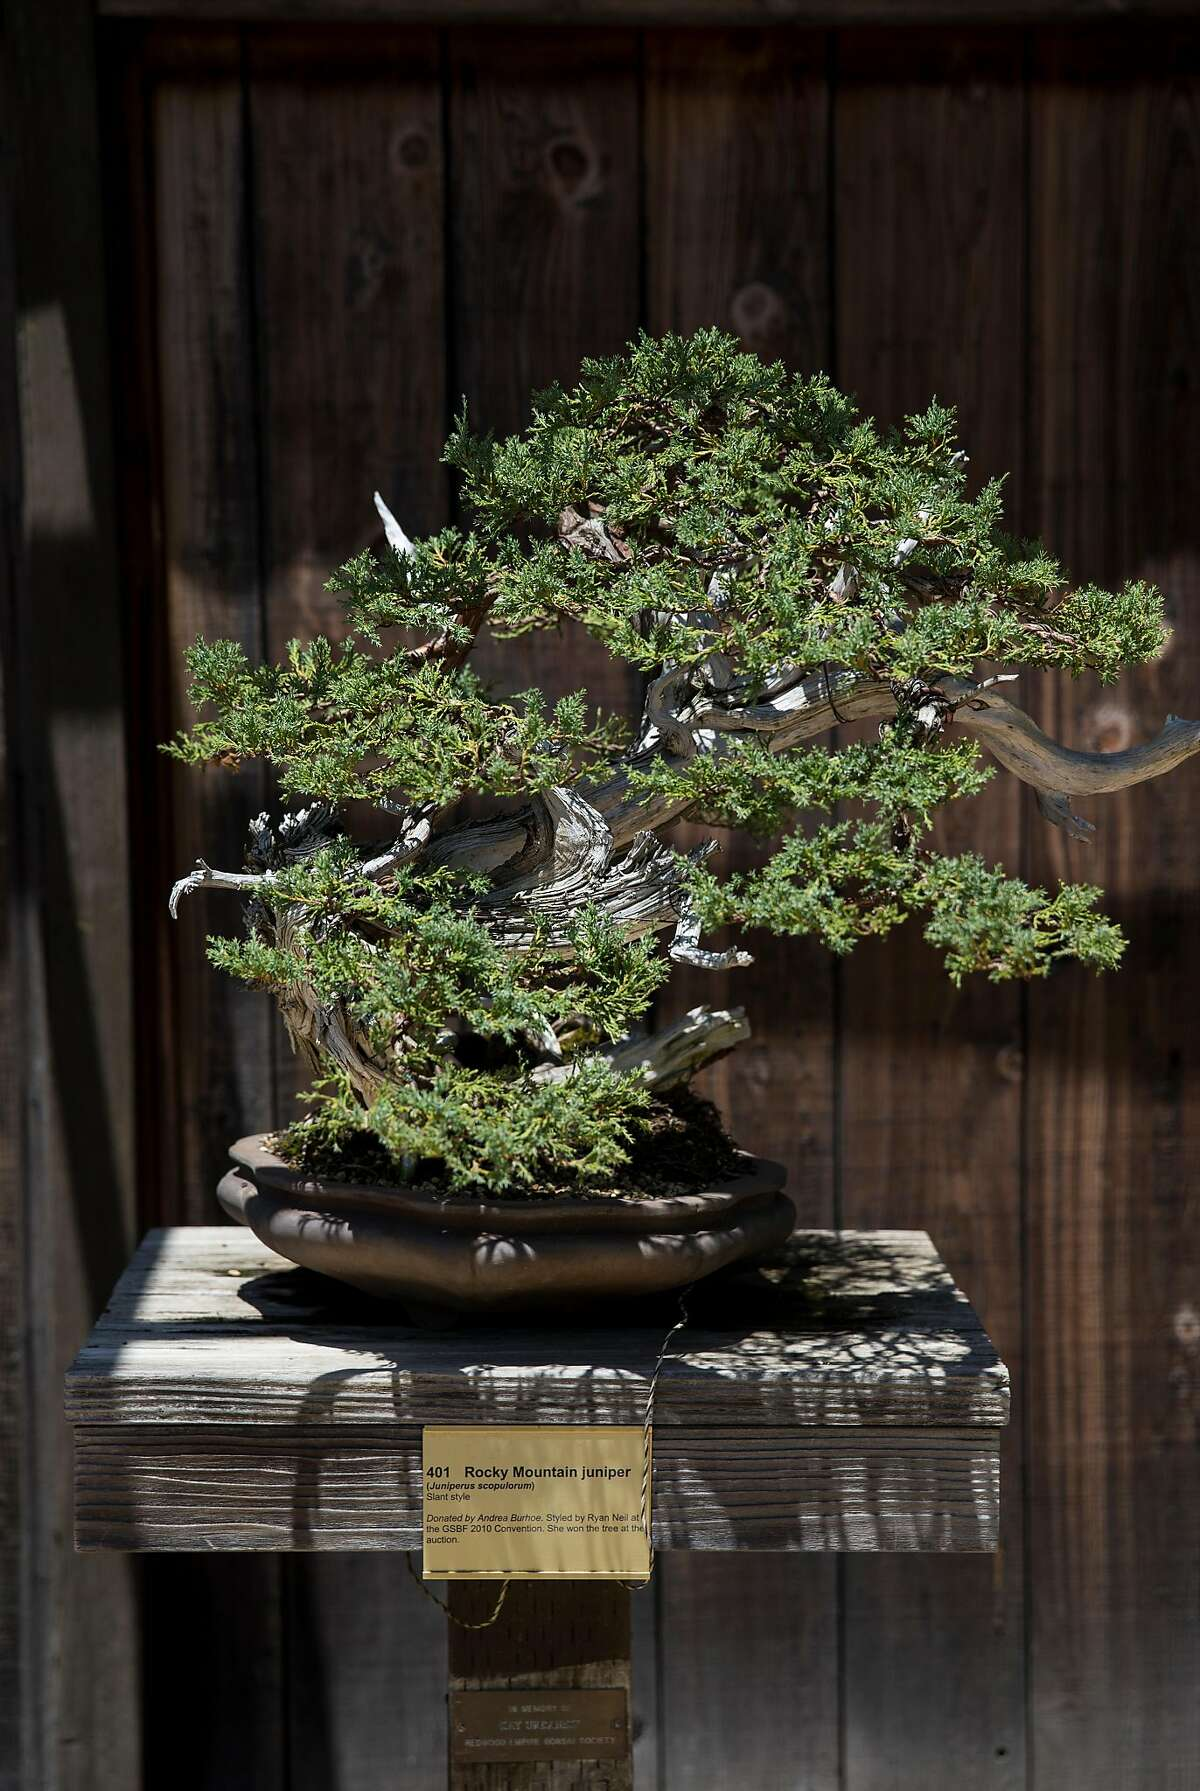 A bonsai tree is seen on display in the Bonsai Garden at Lake Merritt in Oakland, Calif., on Sunday, June 4, 2017. Admission to the garden is free although donations are welcomed.